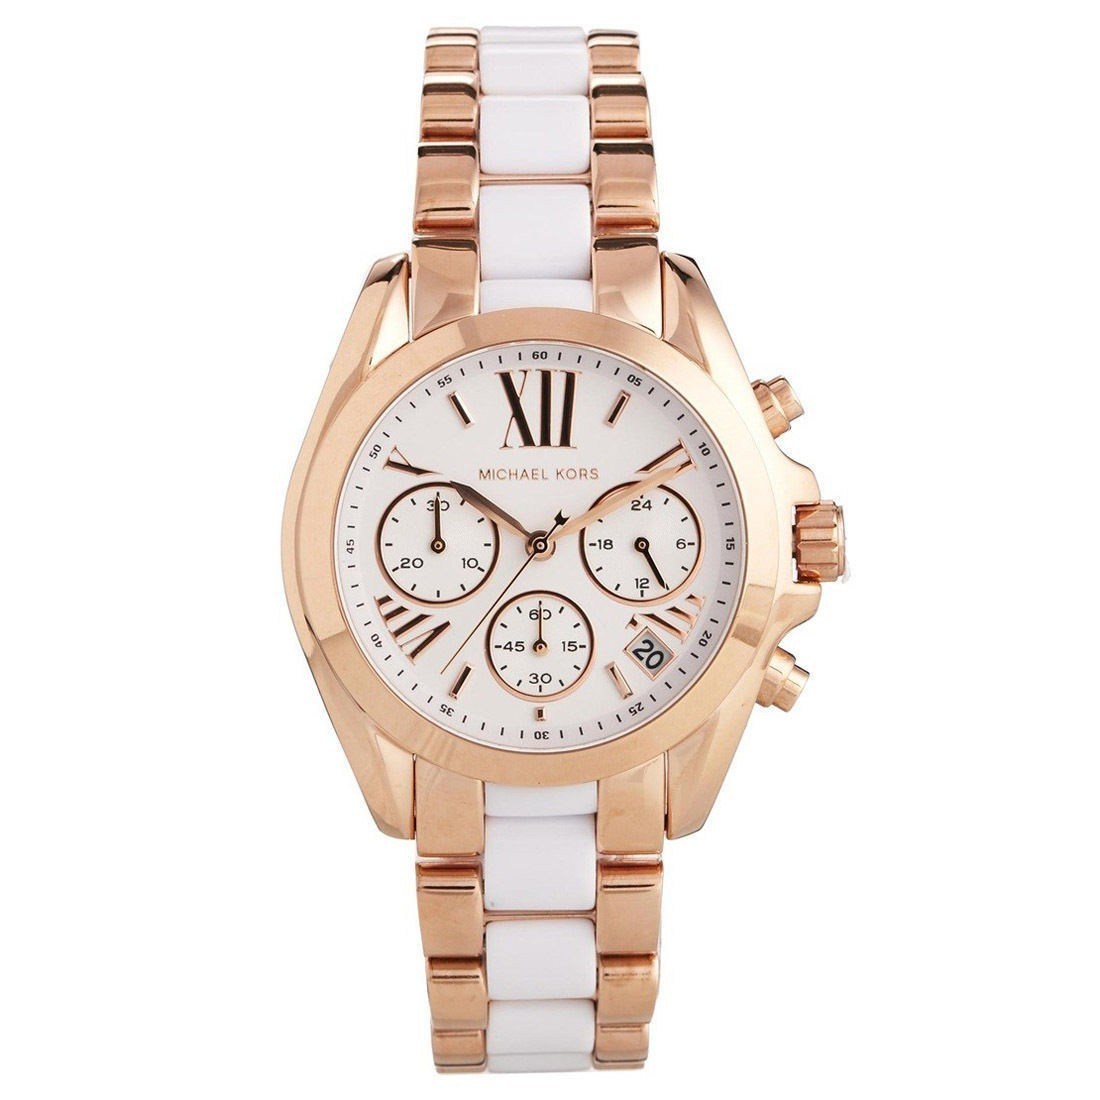 7785a30dd5ee Michael Kors Ladies Rose Gold   white Bradshaw Chronograph ...